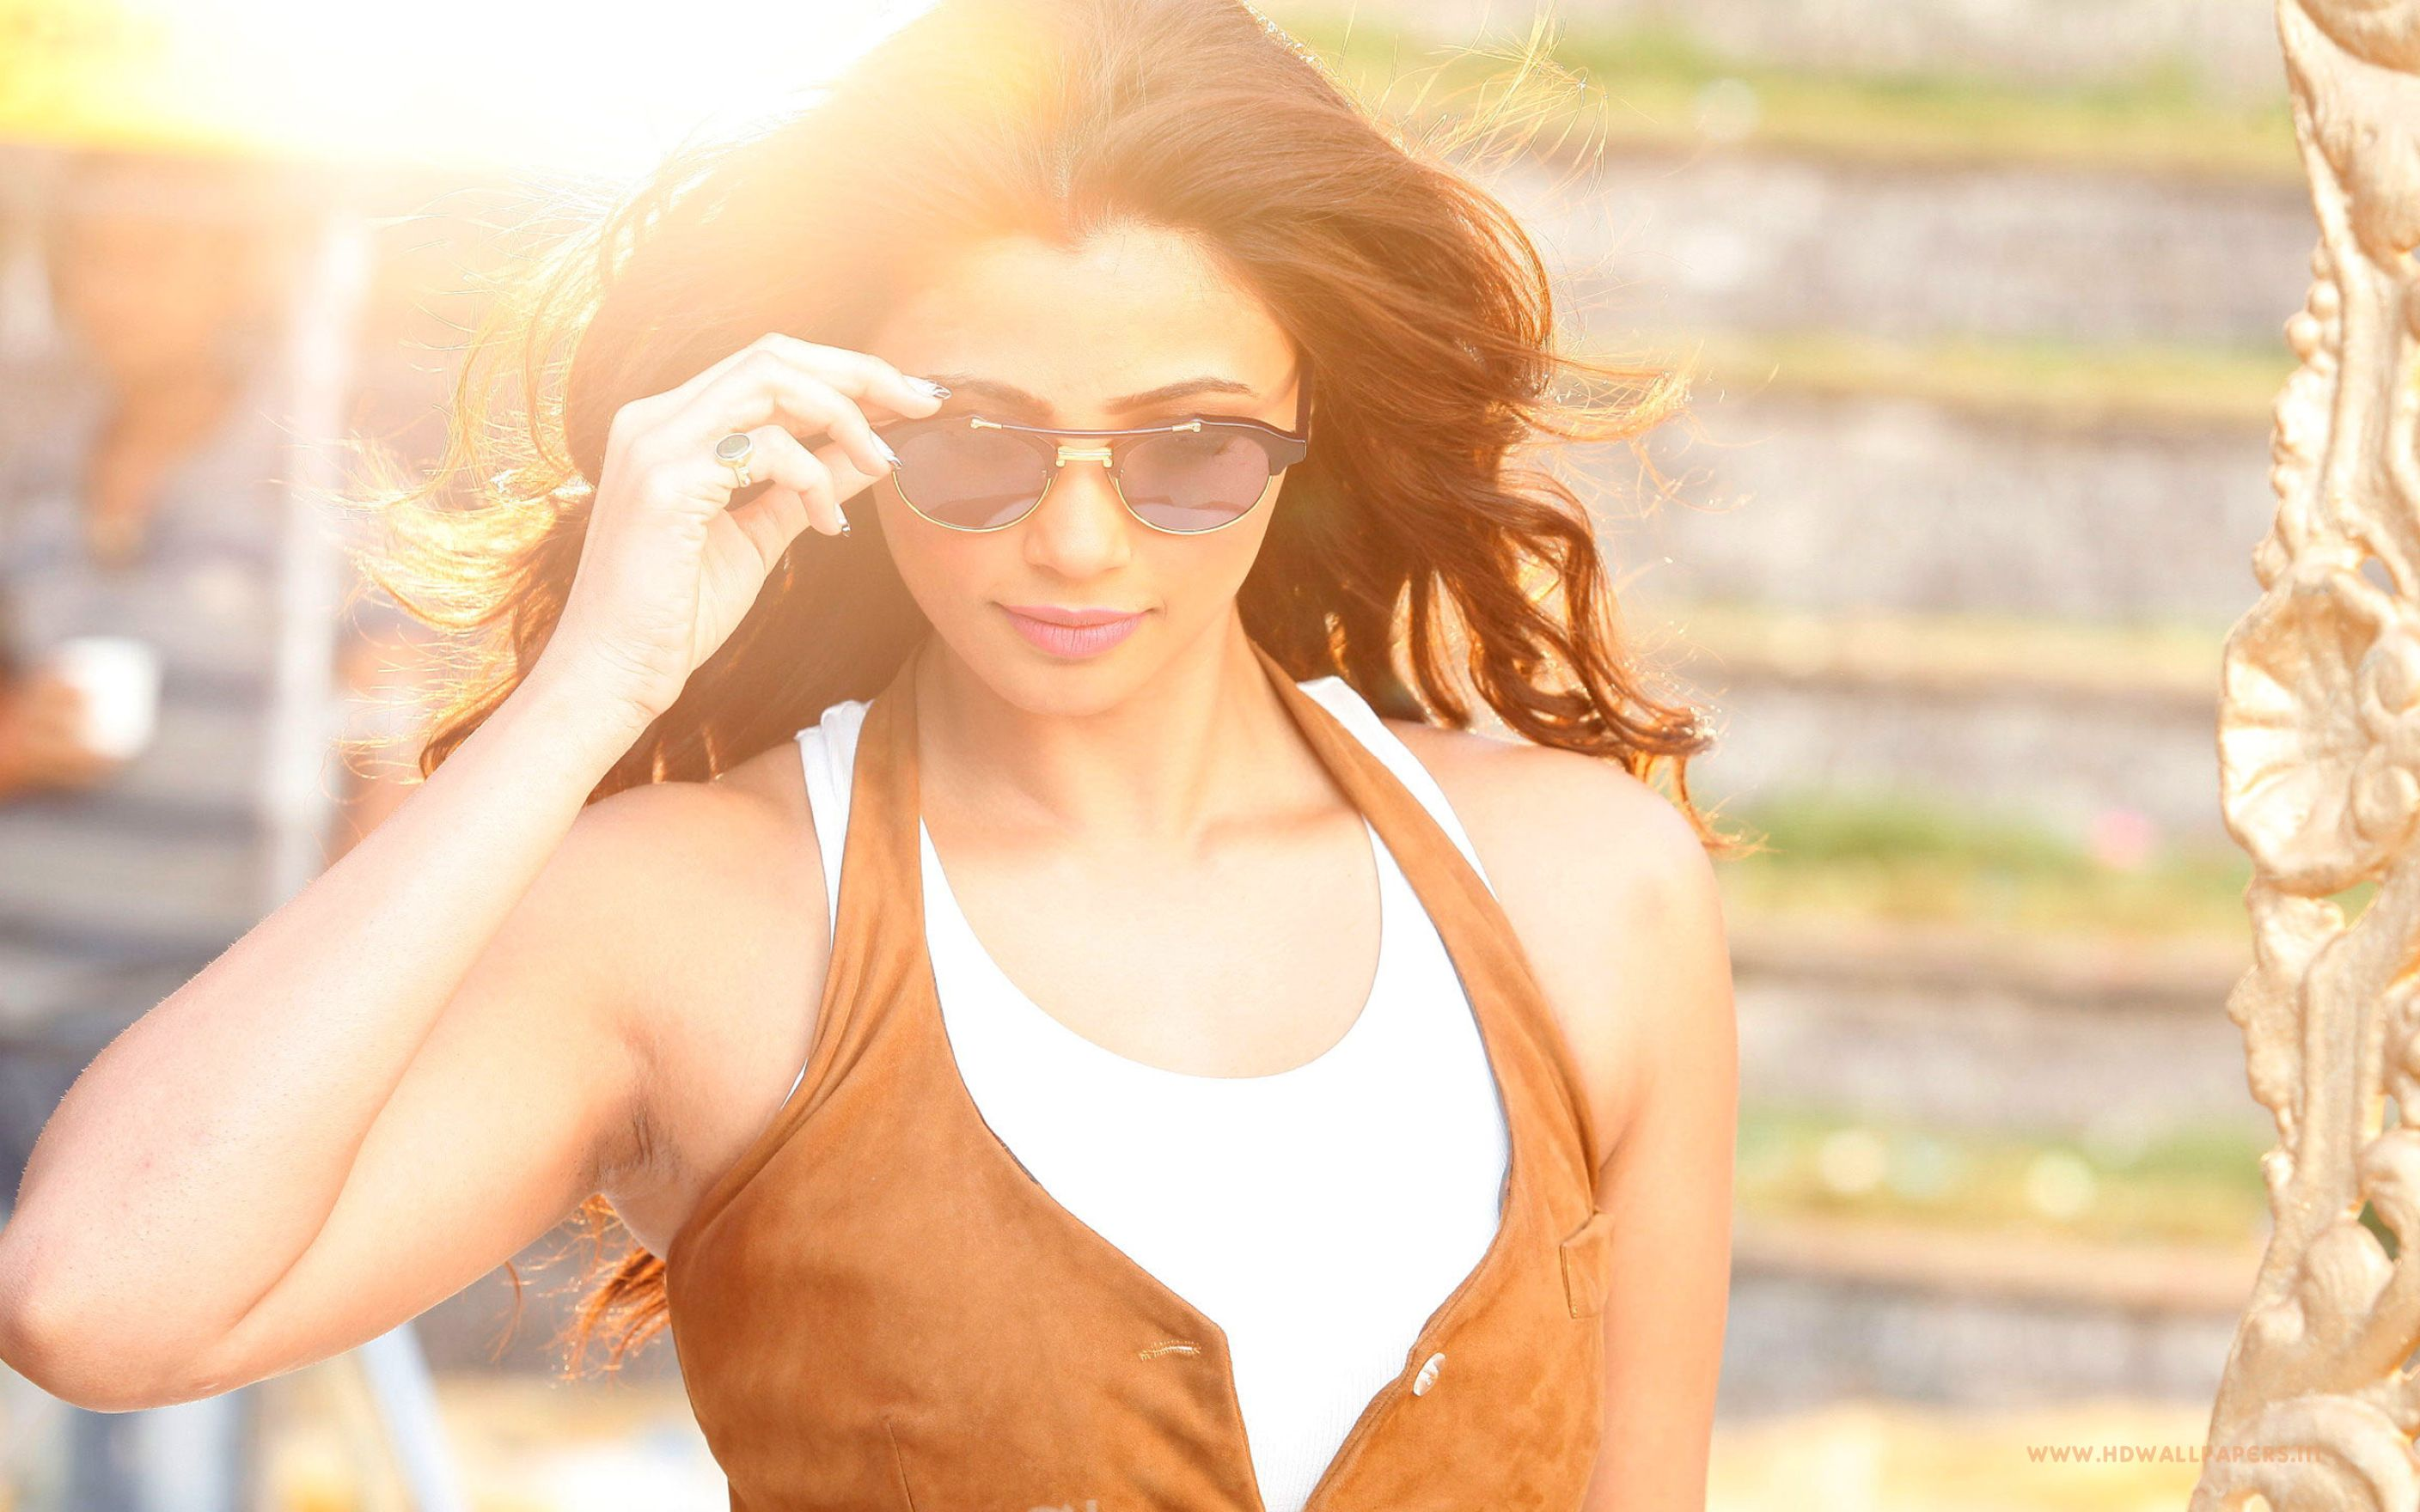 Download free HD Daisy Shah Wide Wallpaper, image